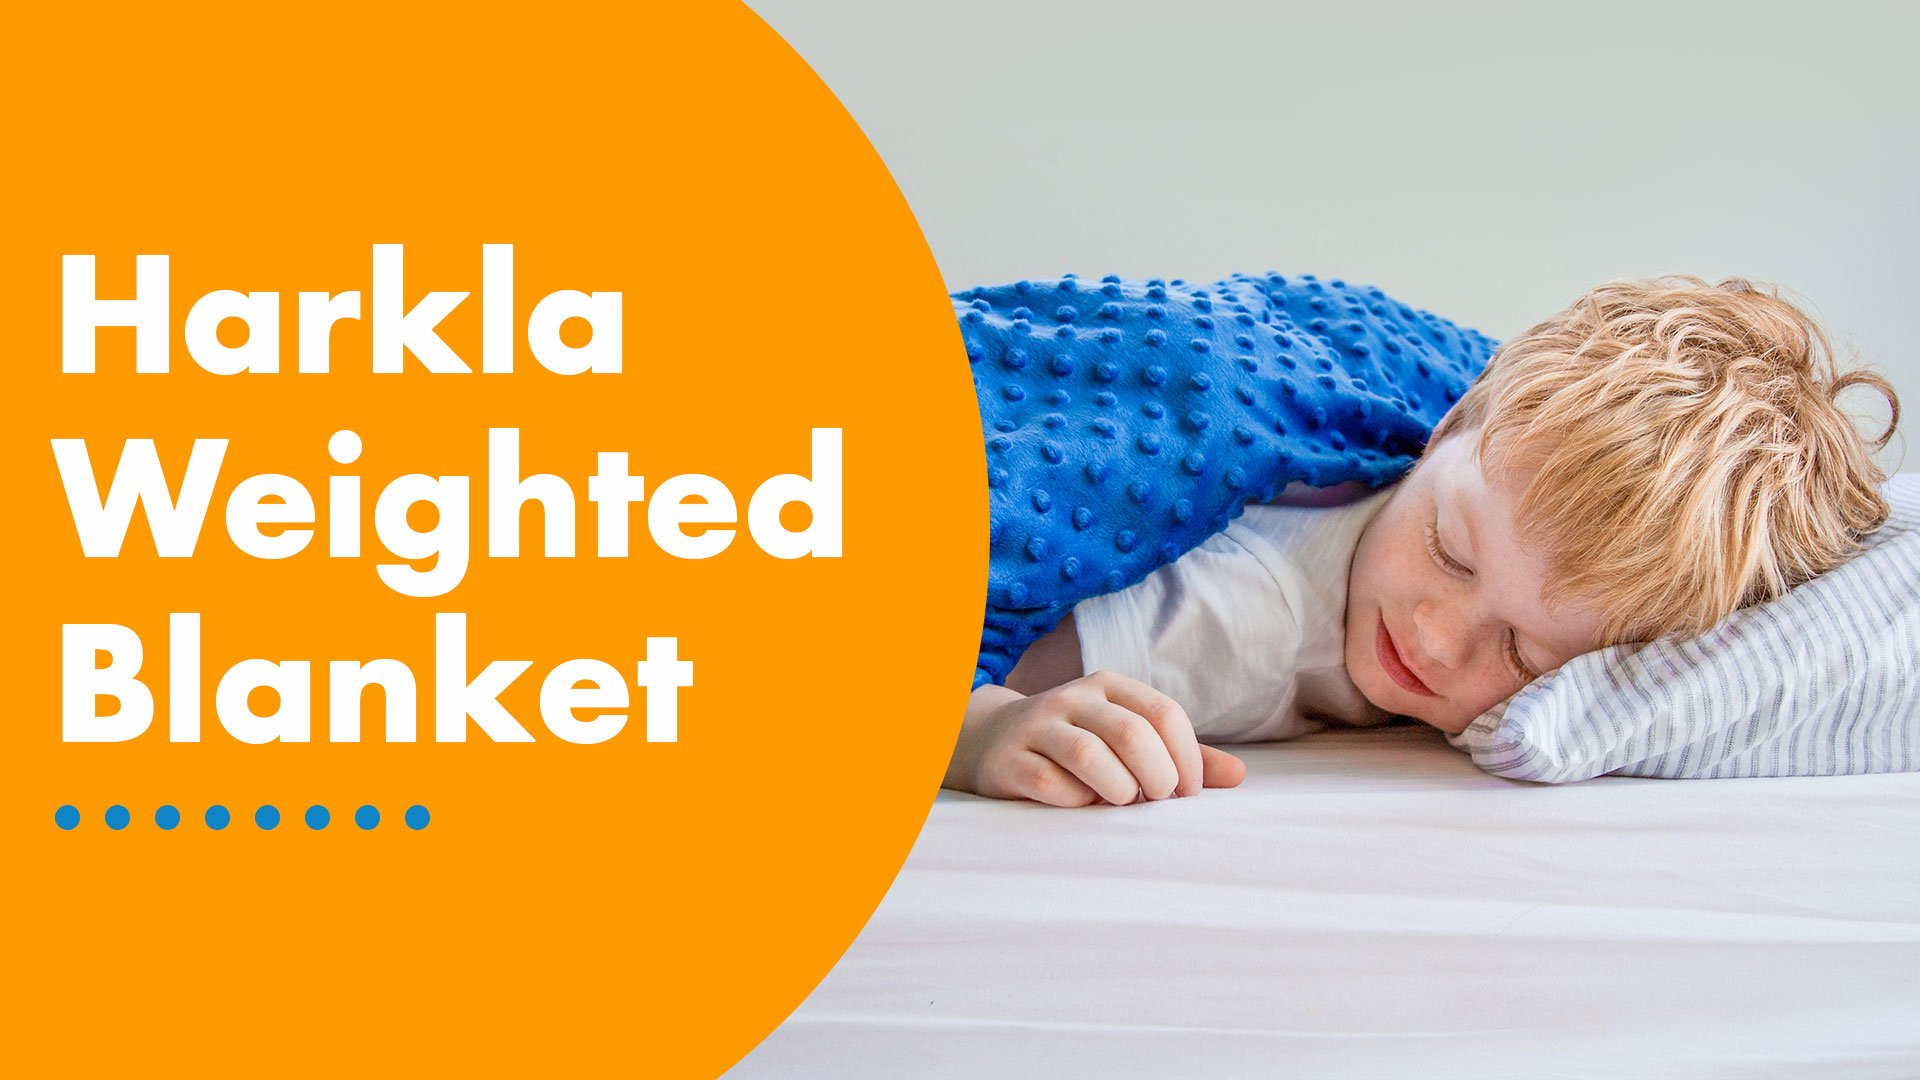 Harkla Weighted Blanket for Kids (7lbs) - Gift for Children That ... 6077a1184